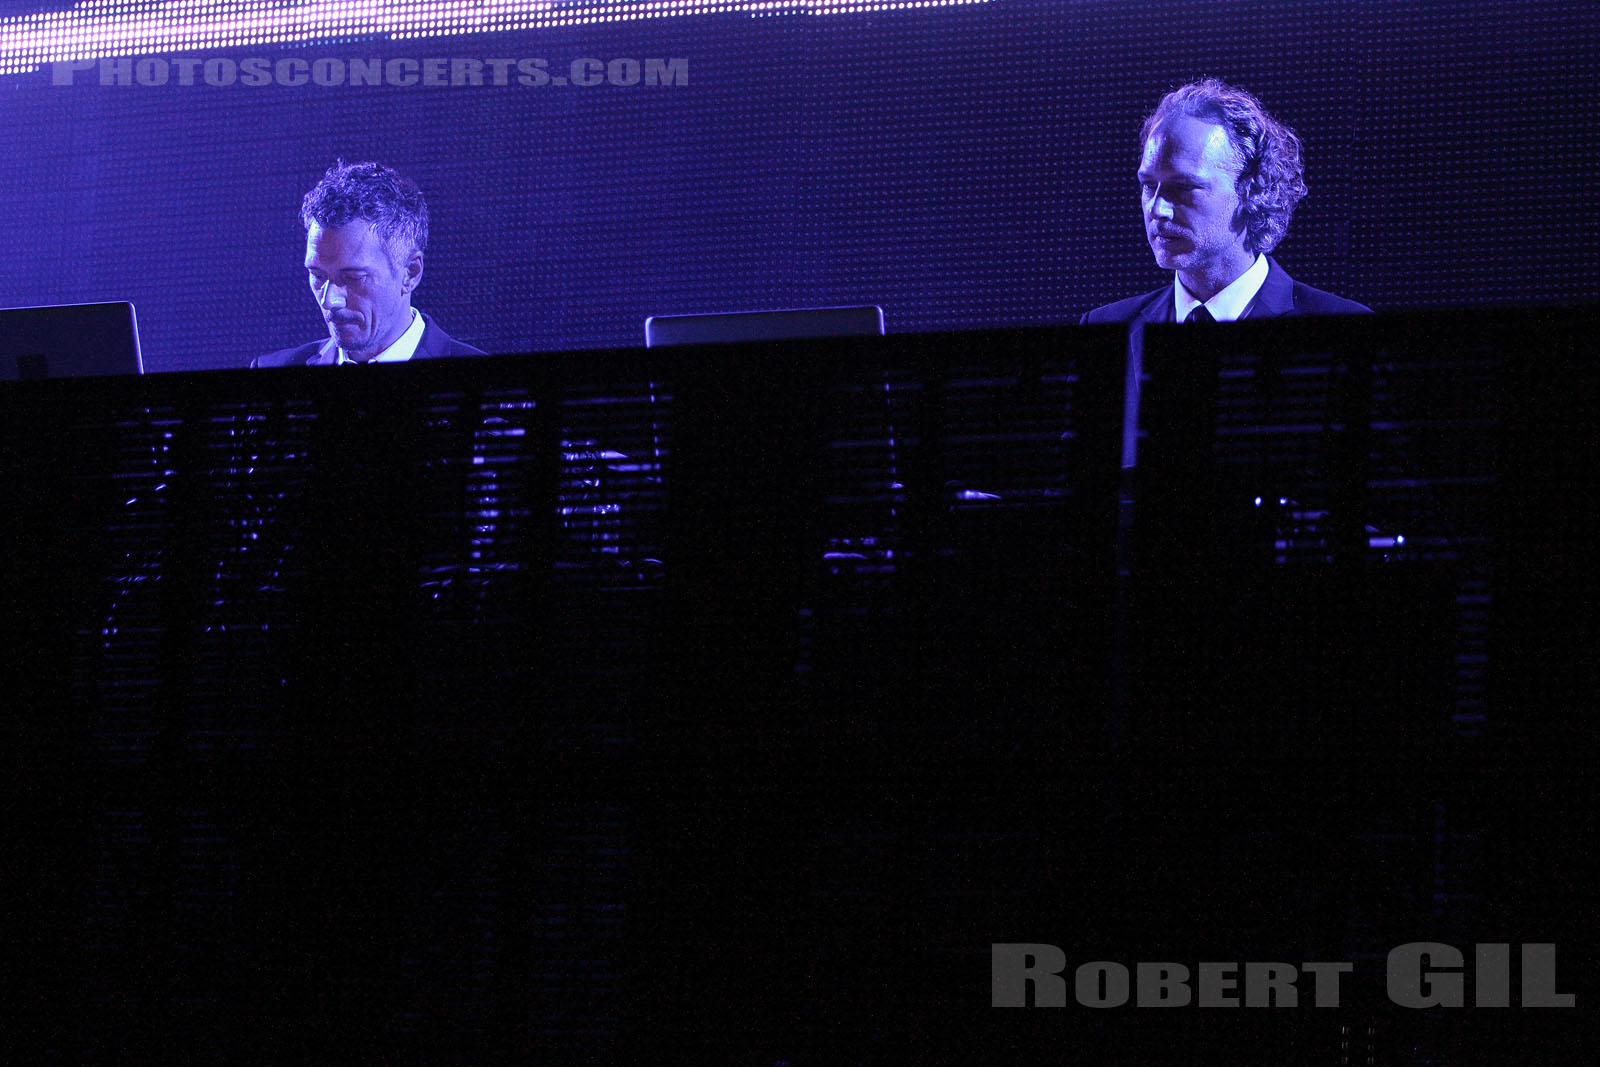 KRUDER AND DORFMEISTER - 2011-09-10 - PARIS - Parc de Bagatelle